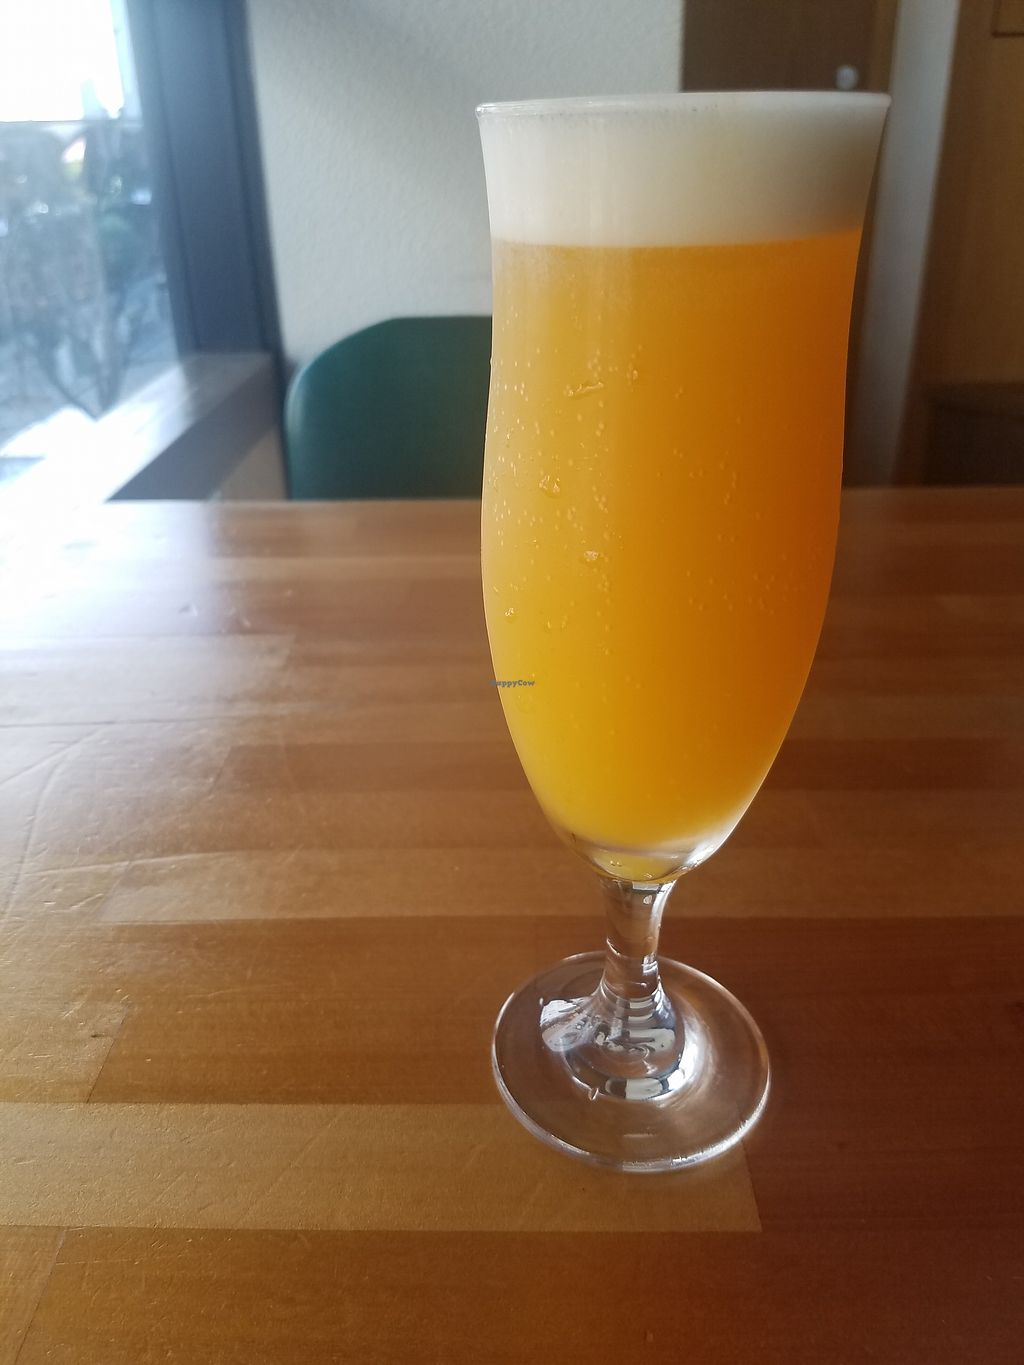 "Photo of Cafe Atl  by <a href=""/members/profile/ReiAmber"">ReiAmber</a> <br/>mikan beer <br/> February 18, 2018  - <a href='/contact/abuse/image/25368/360692'>Report</a>"